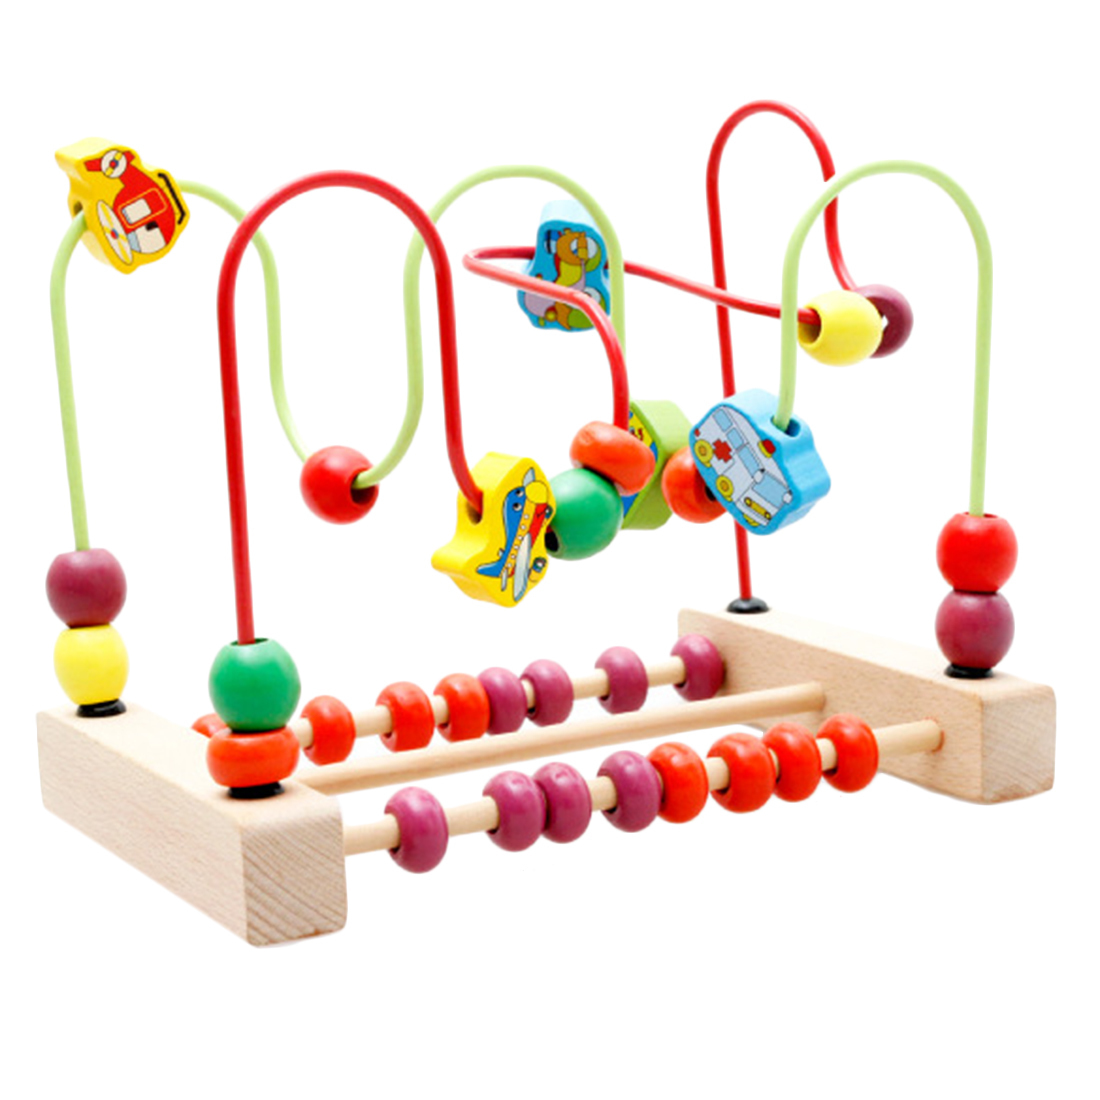 360DSC Counting Traffic Bead Wire Maze Roller Coaster Wooden.